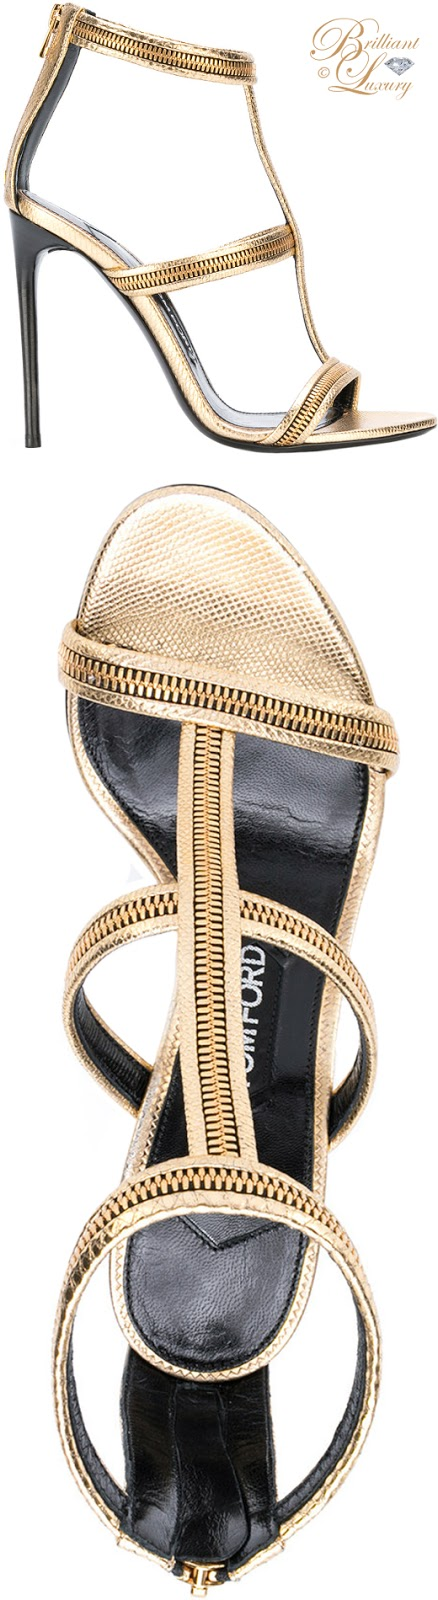 Brilliant Luxury ♦ Tom Ford zip sandals